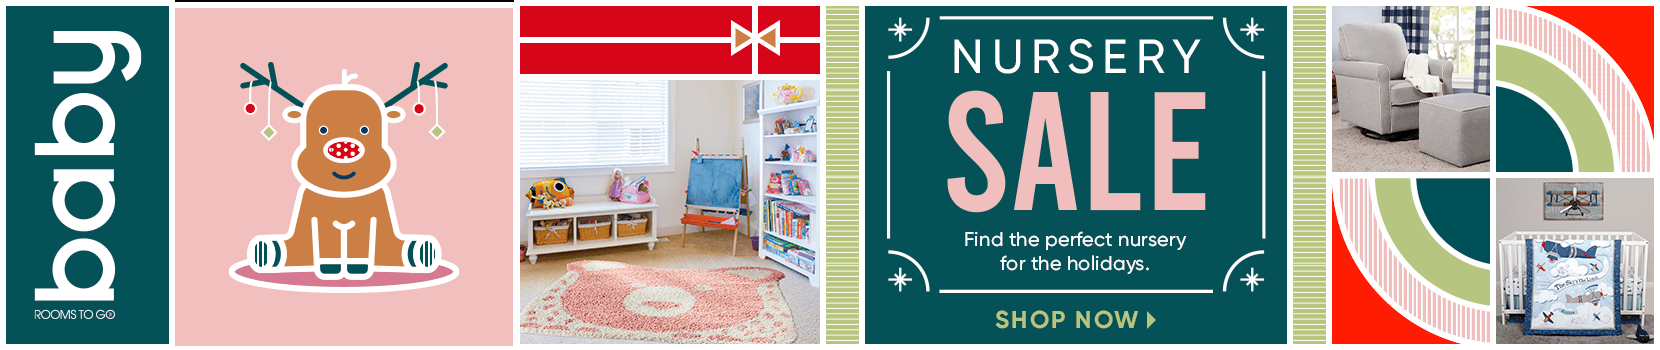 nursery sale. find the perfect nursery for the holidays. shop now